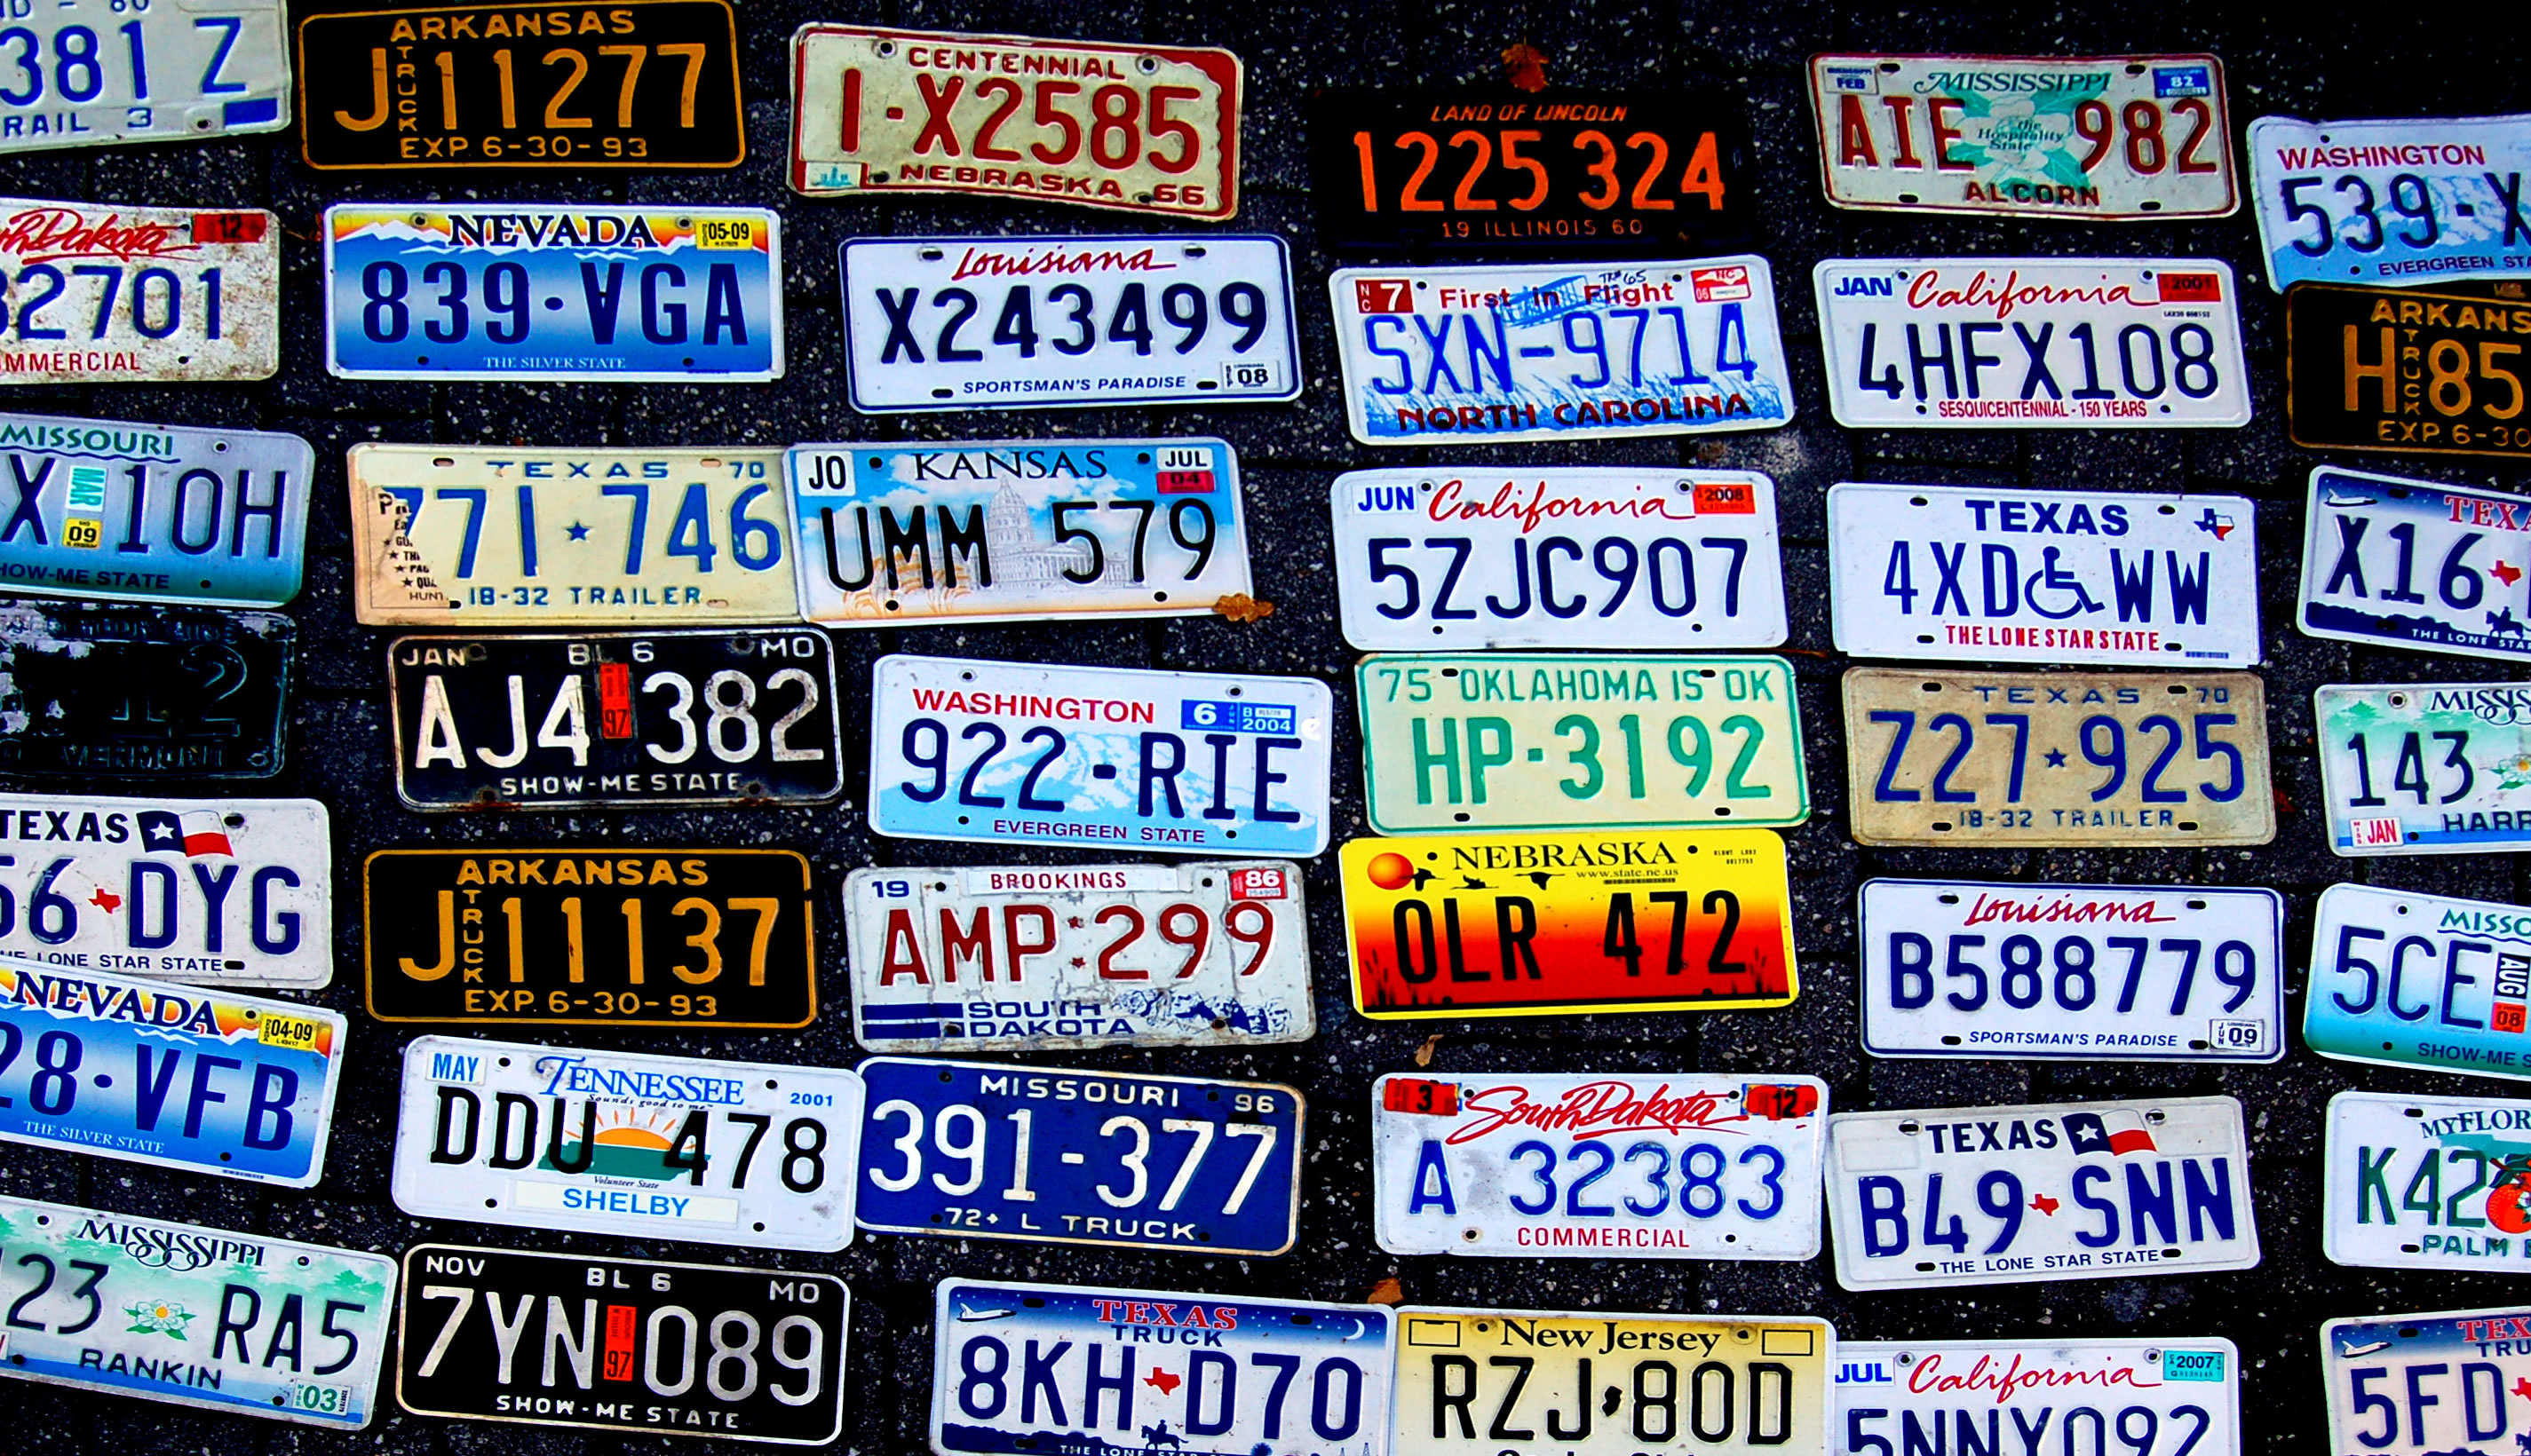 Florida Dmv Registration Renewal >> Illinois License Plate Laws - Illinois Car Laws